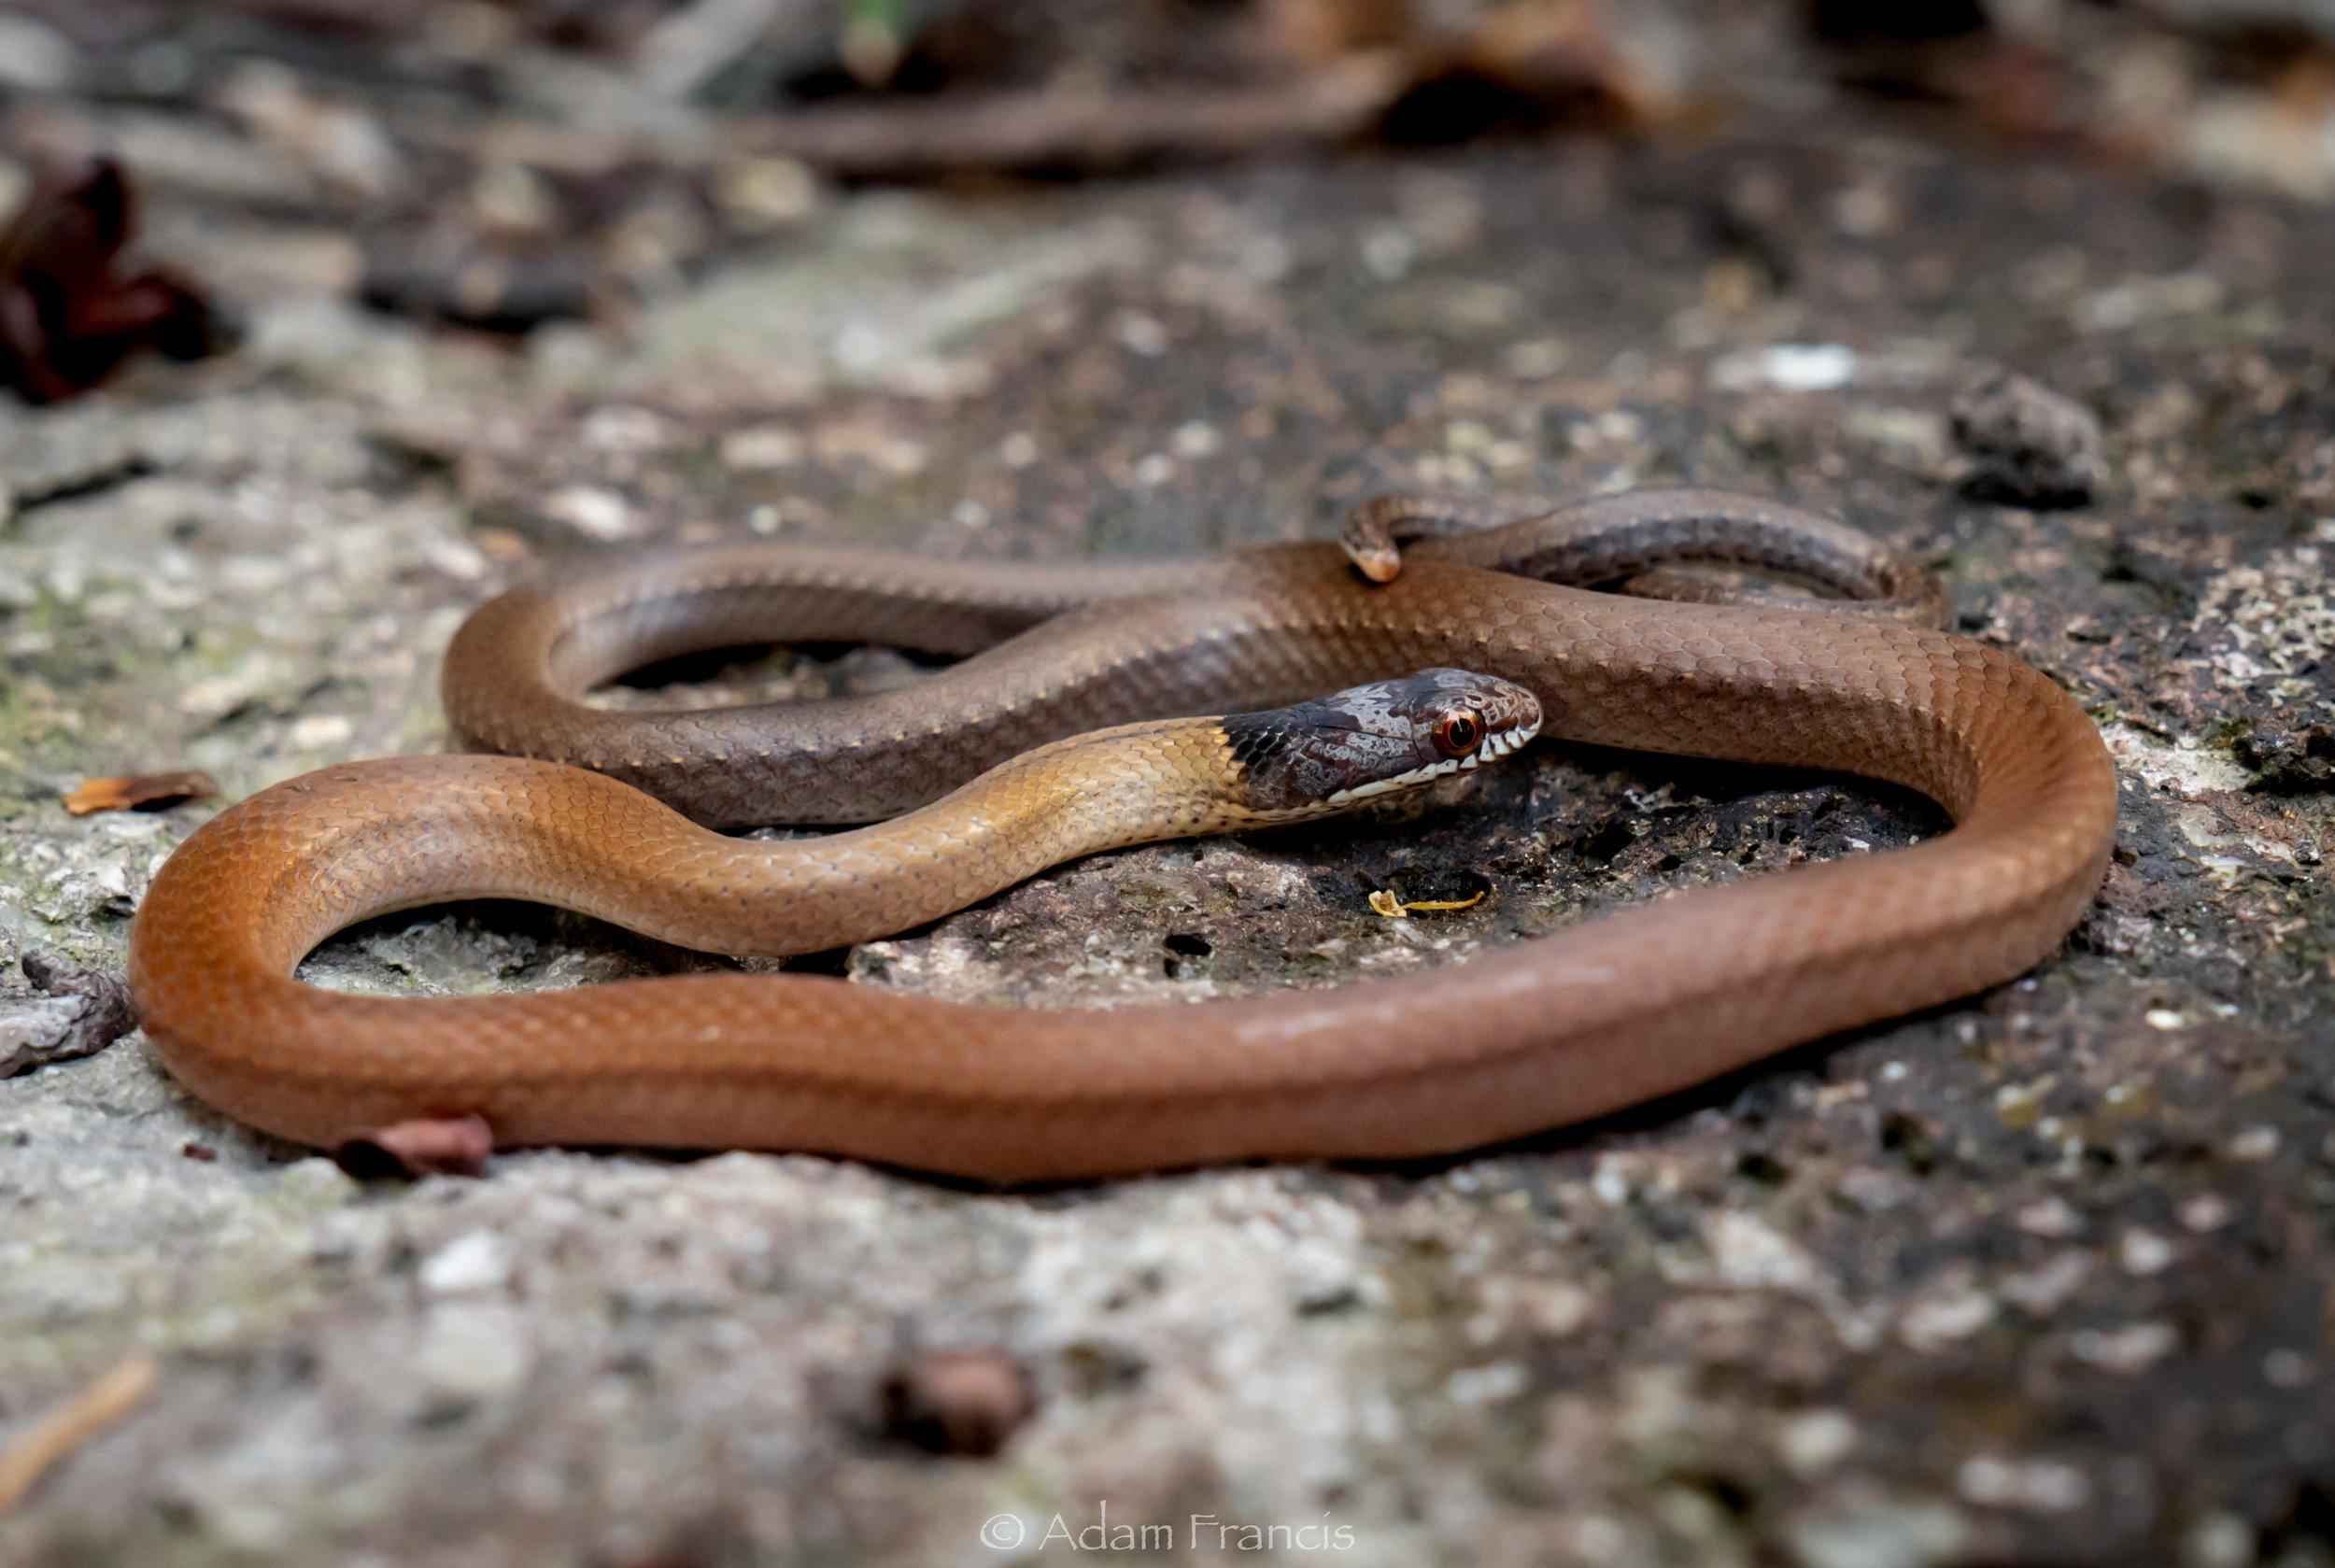 Chinese Mountain Snake - Sibynophis chinensis chinensis